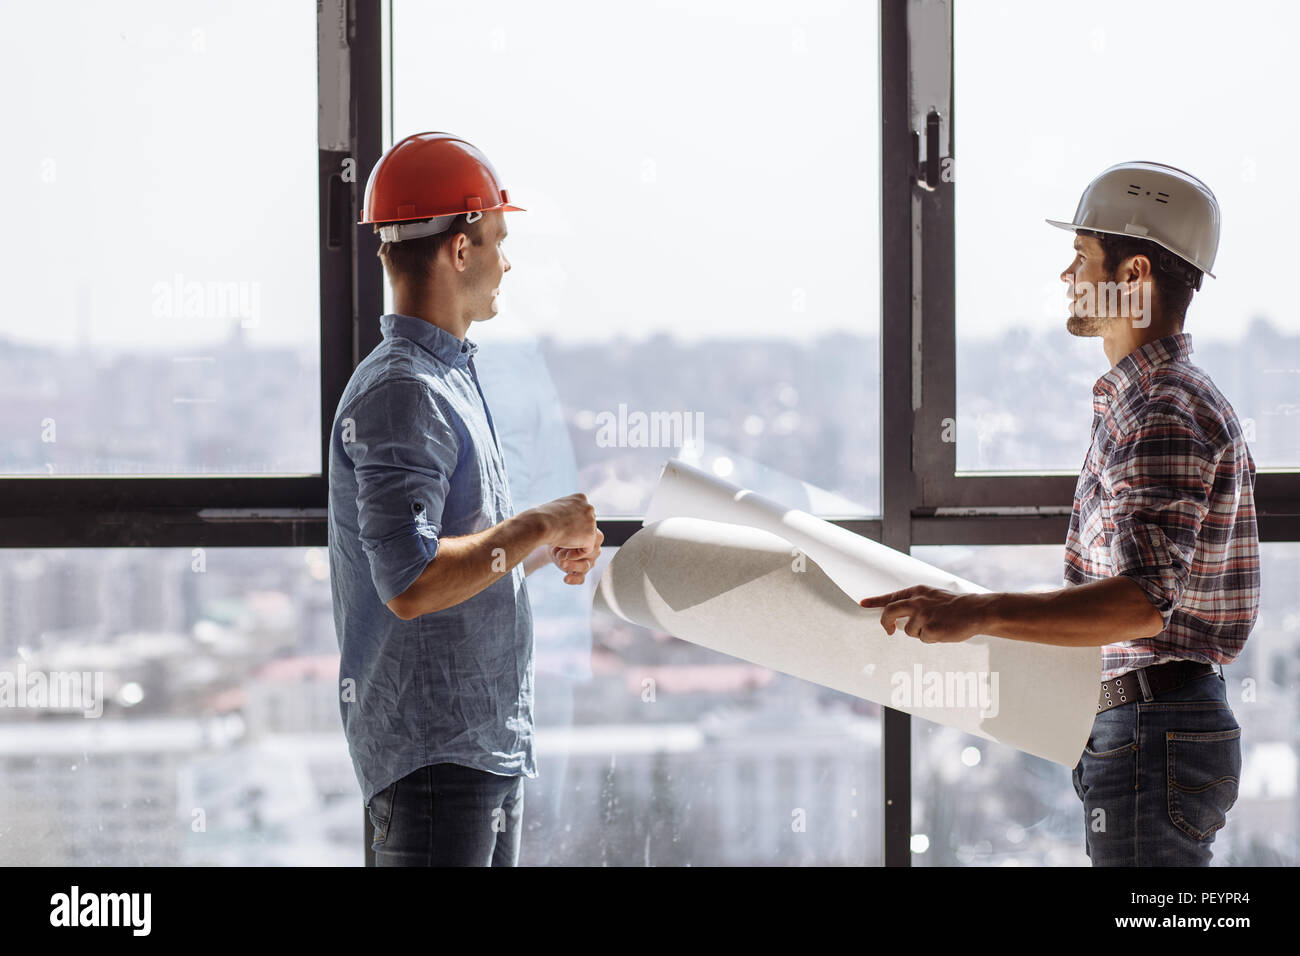 two experiences architects are planning a work skedule. side view photo - Stock Image